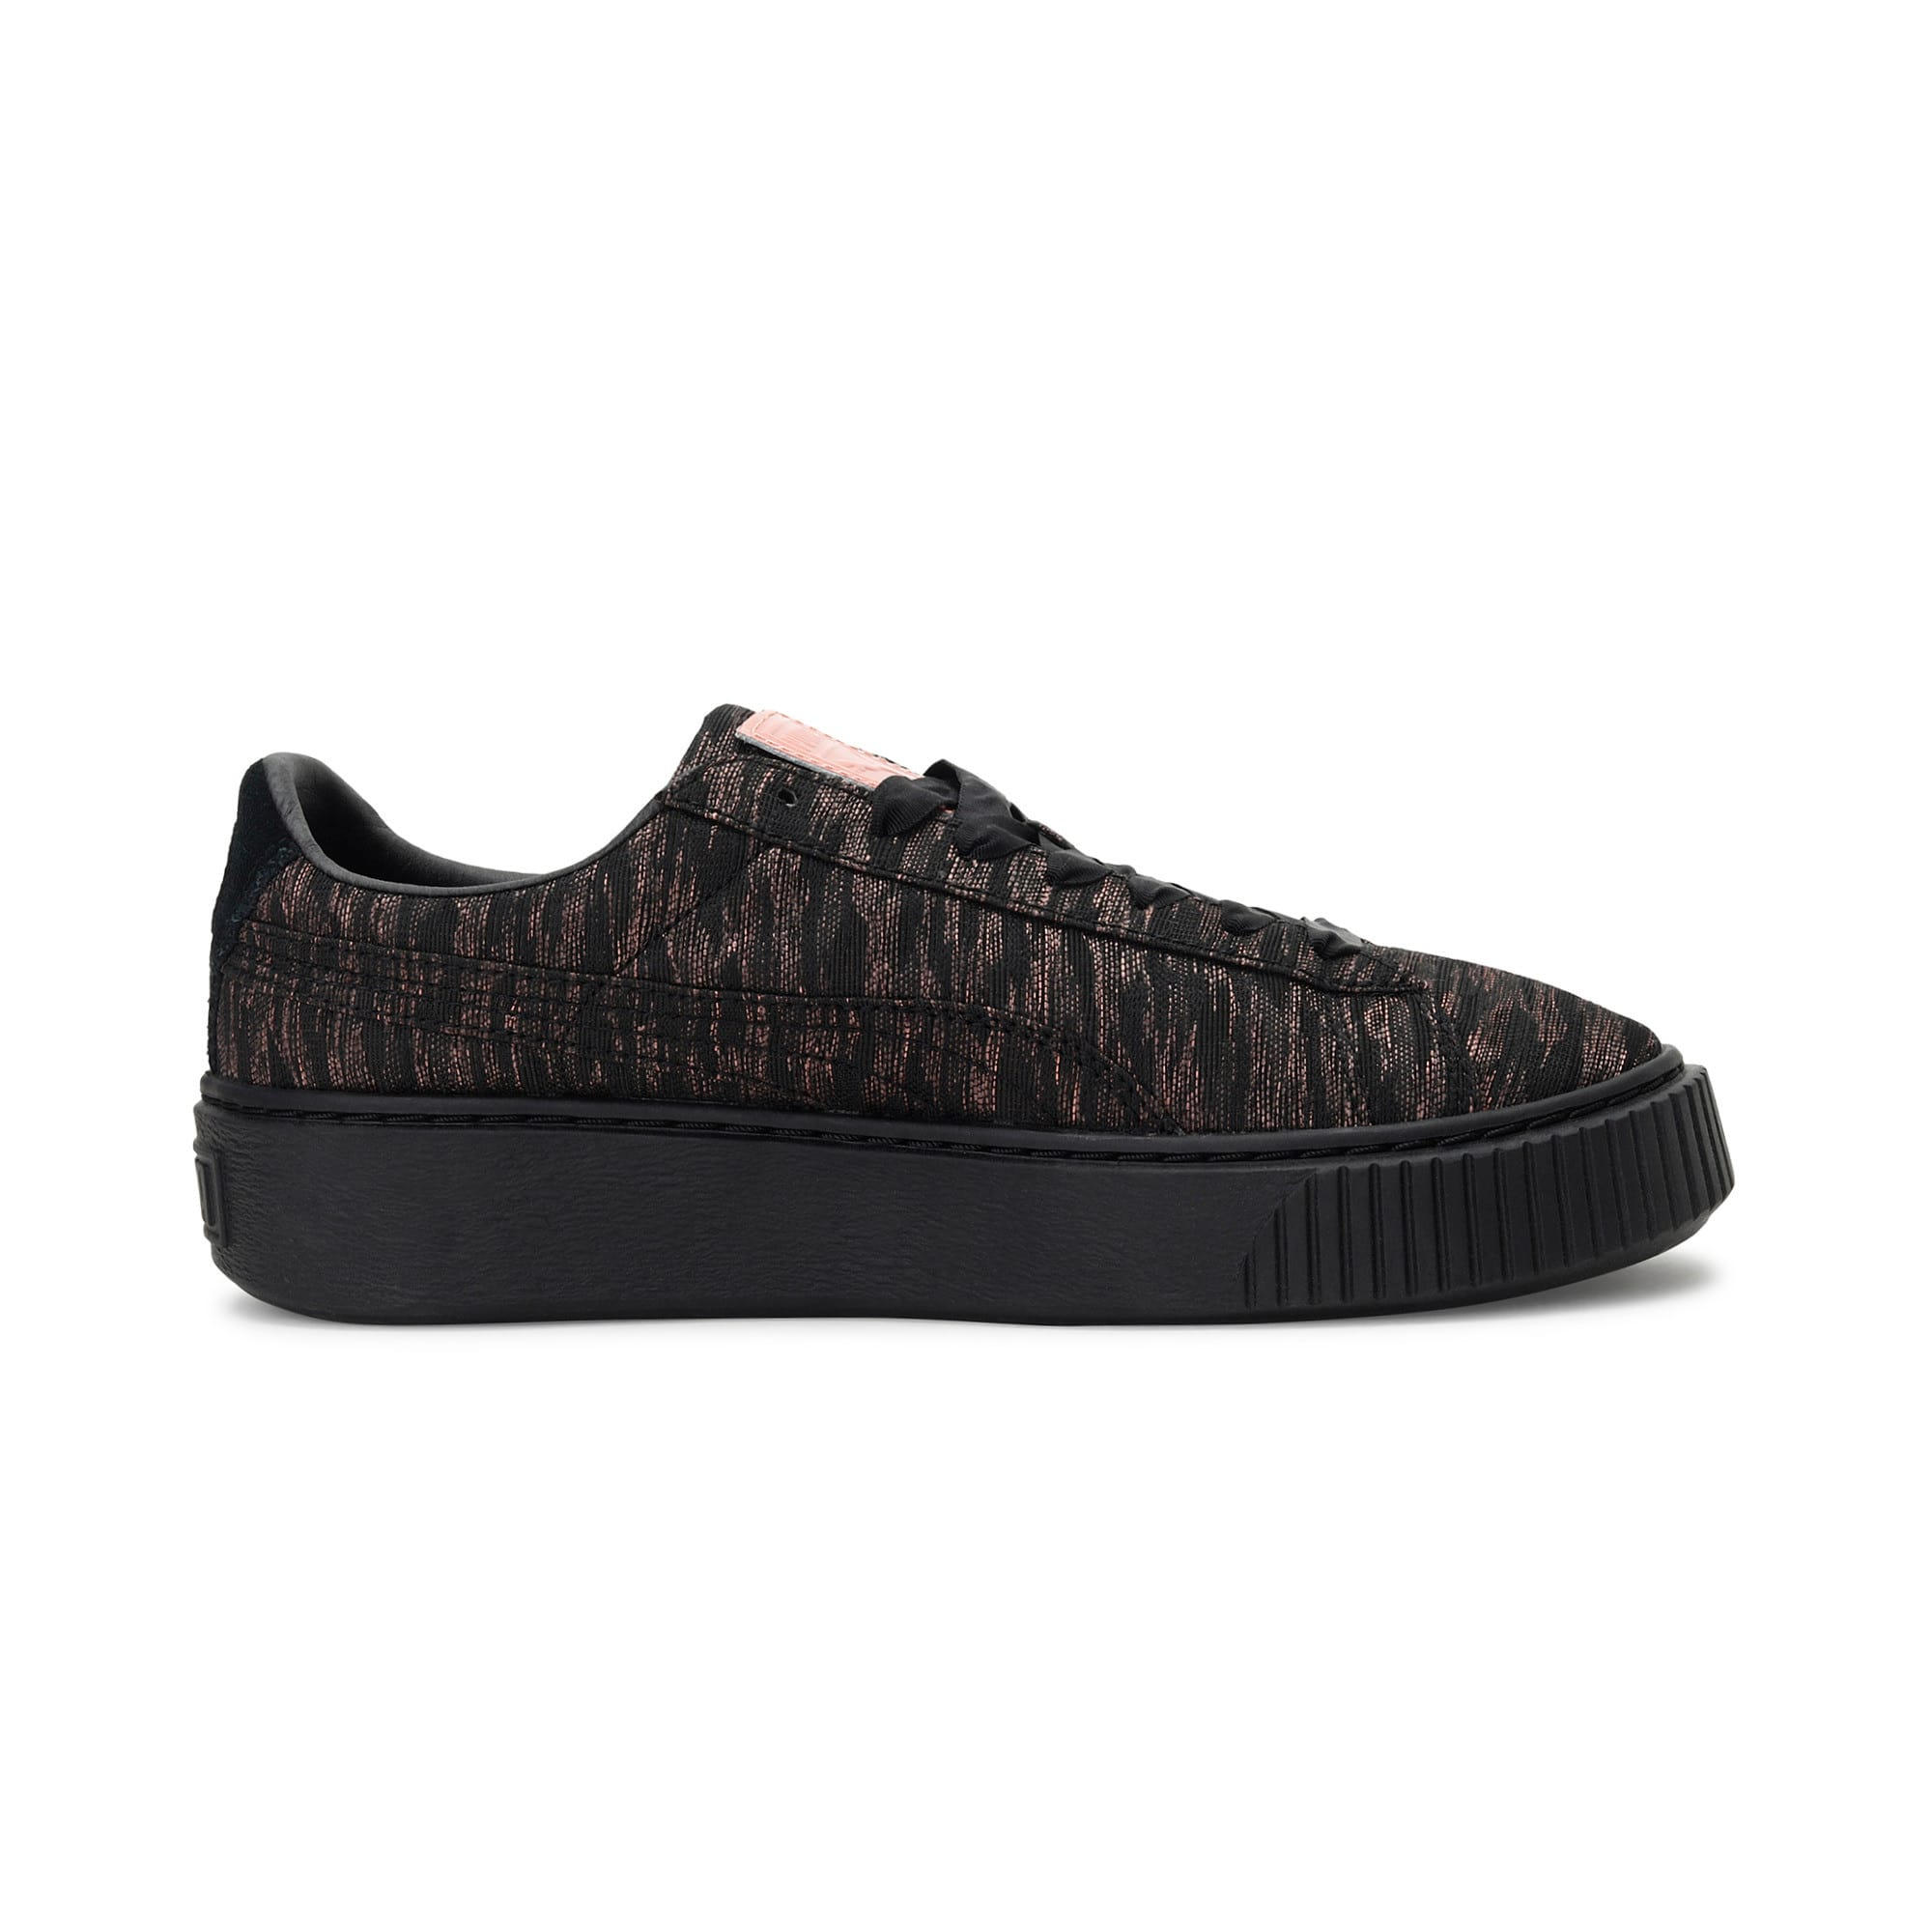 Thumbnail 5 of Basket Platform Velvet Rope Women's Trainers, Puma Black-Puma Black, medium-IND